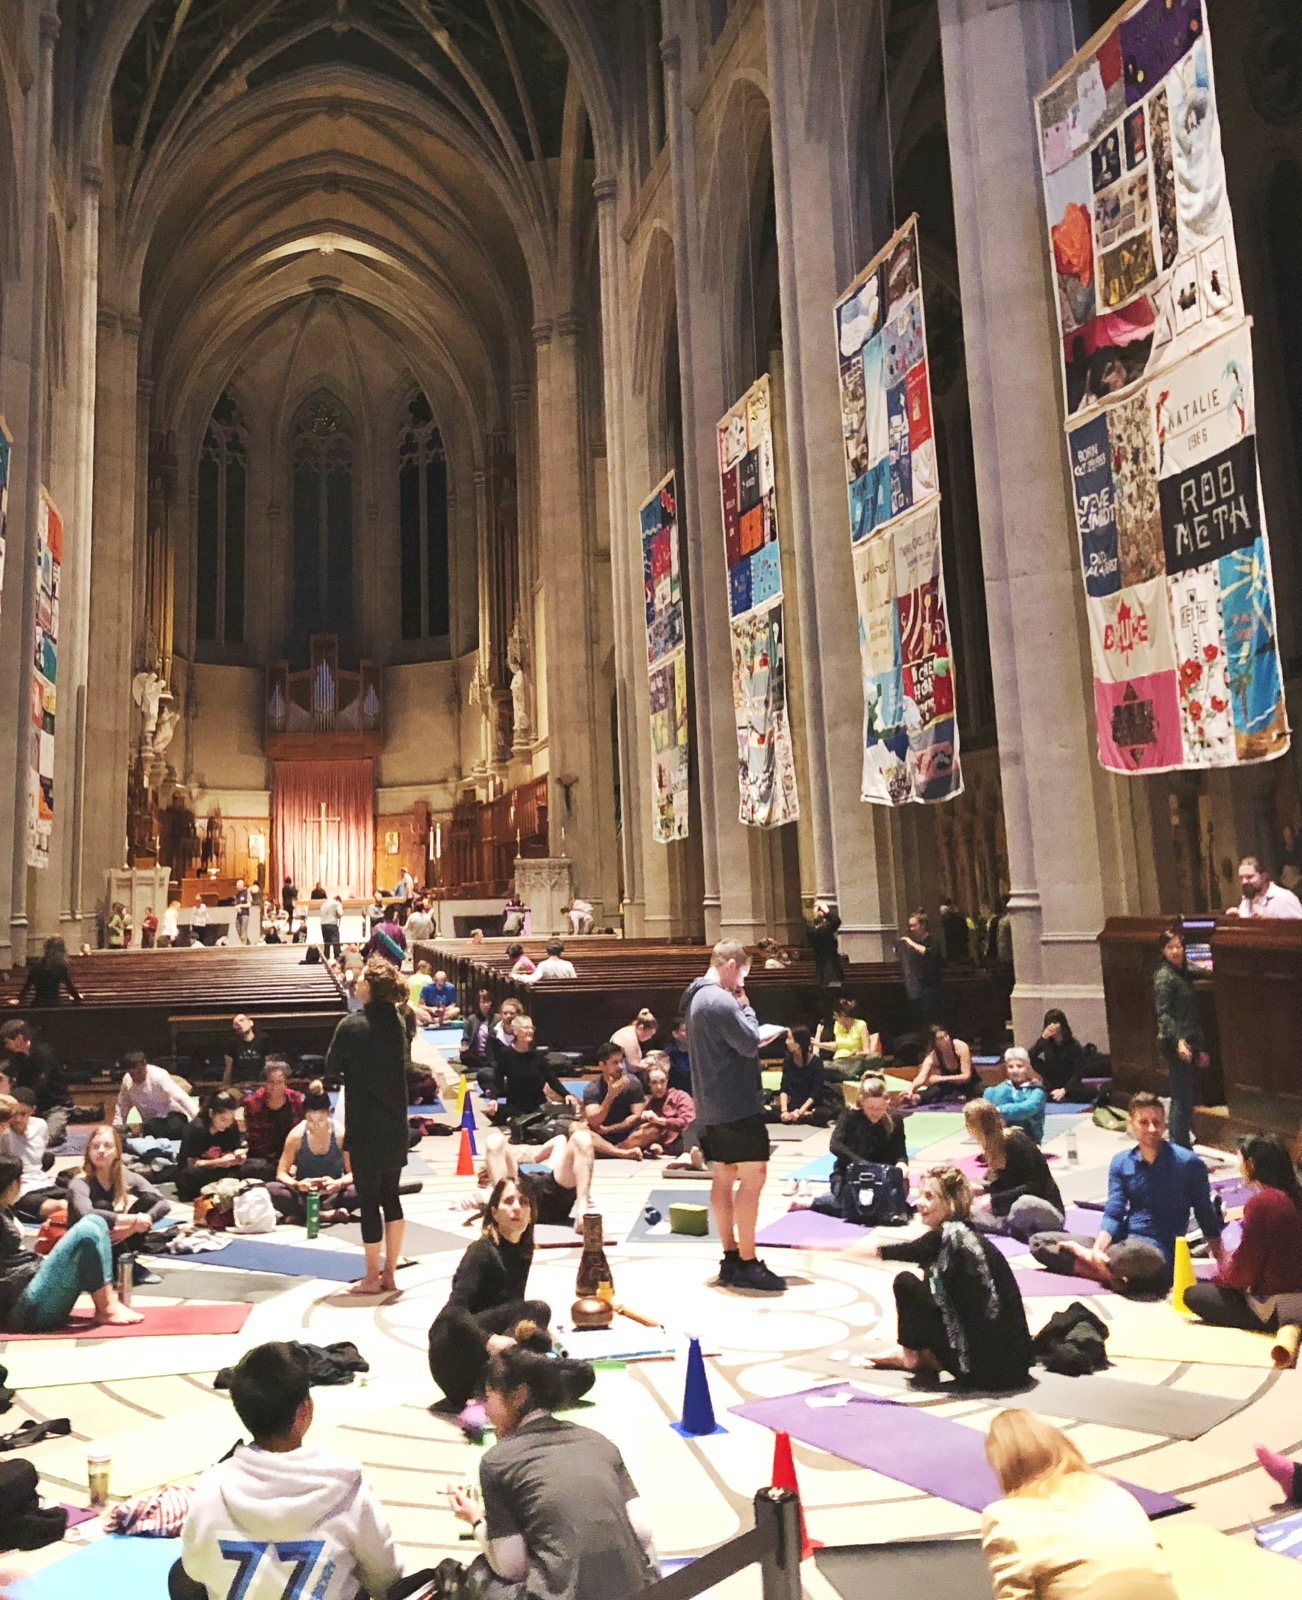 The inside of Grace Cathedral before Tuesday night yoga.